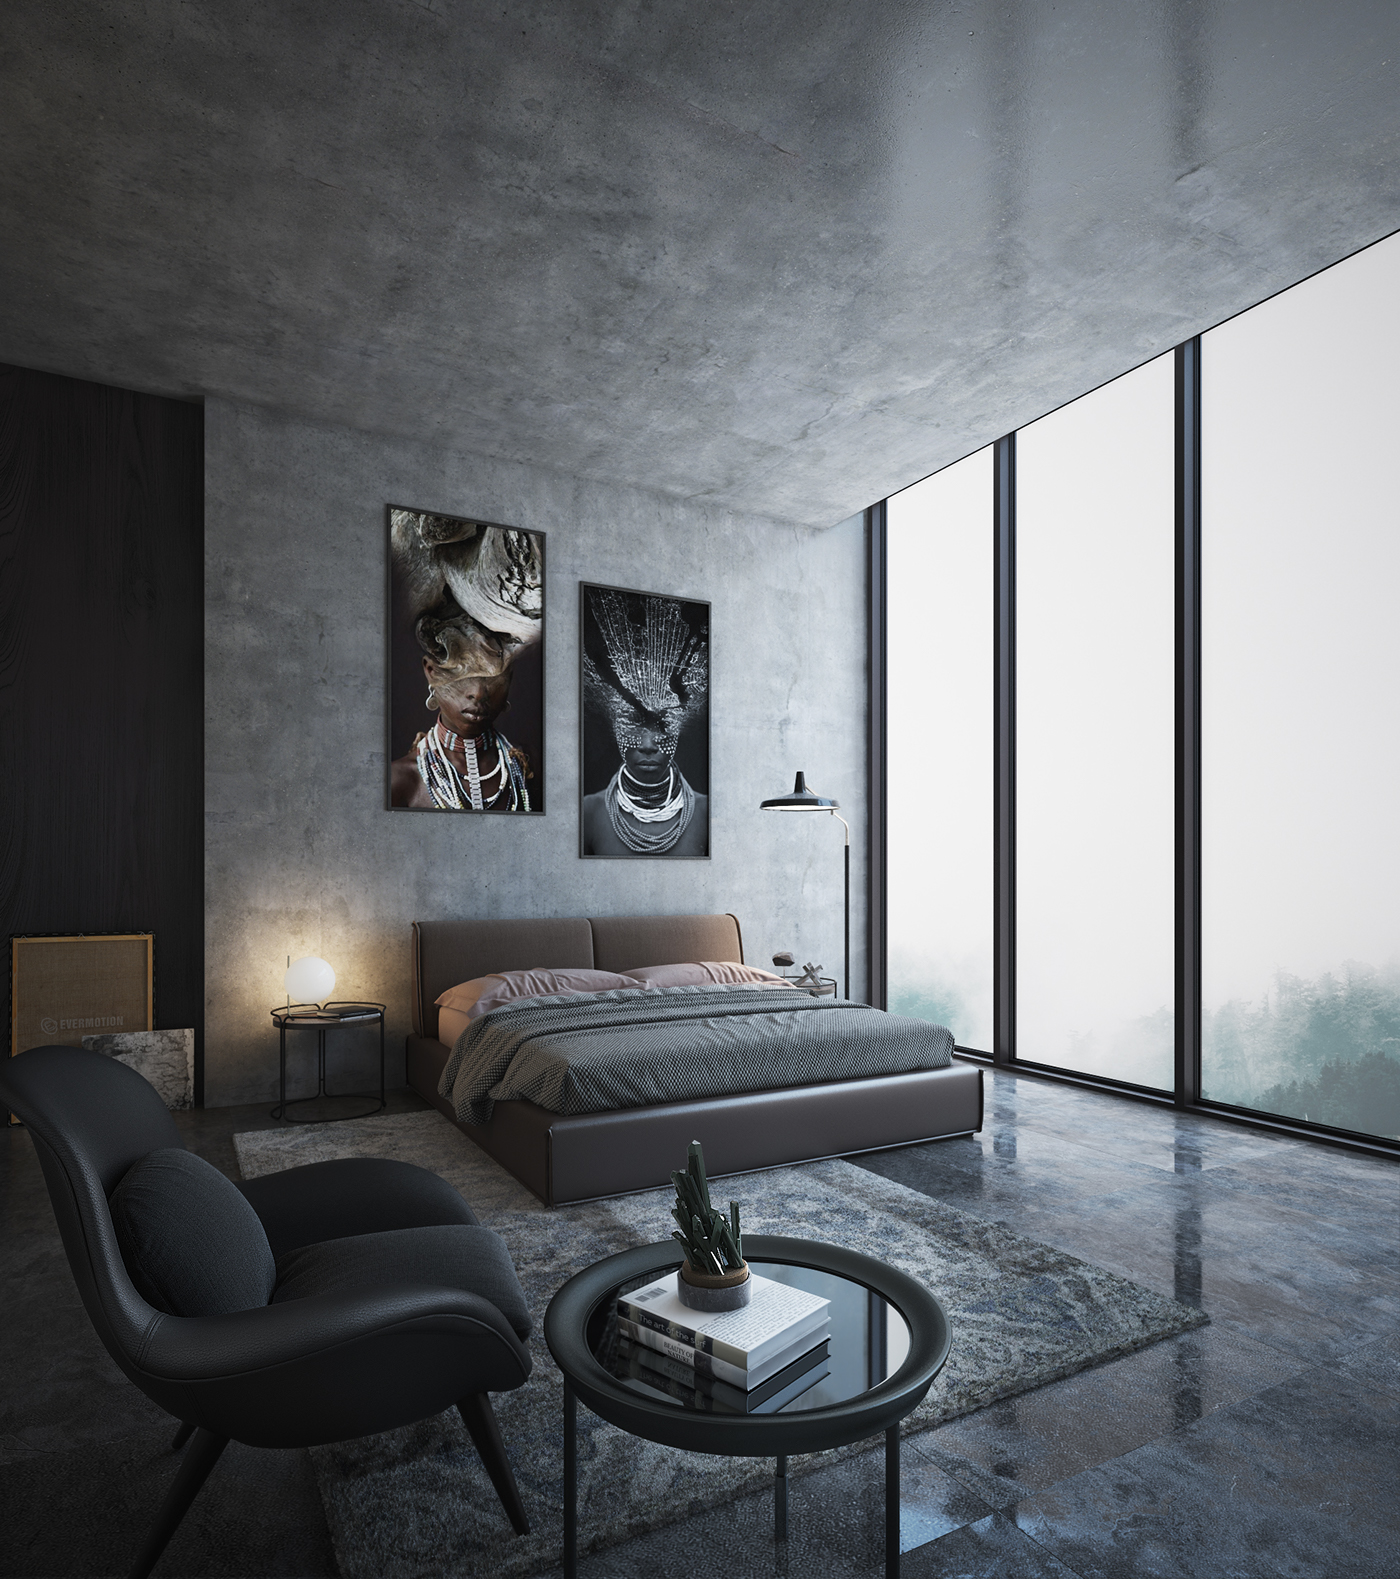 Free 3d interior scene on behance for 3d interior design online